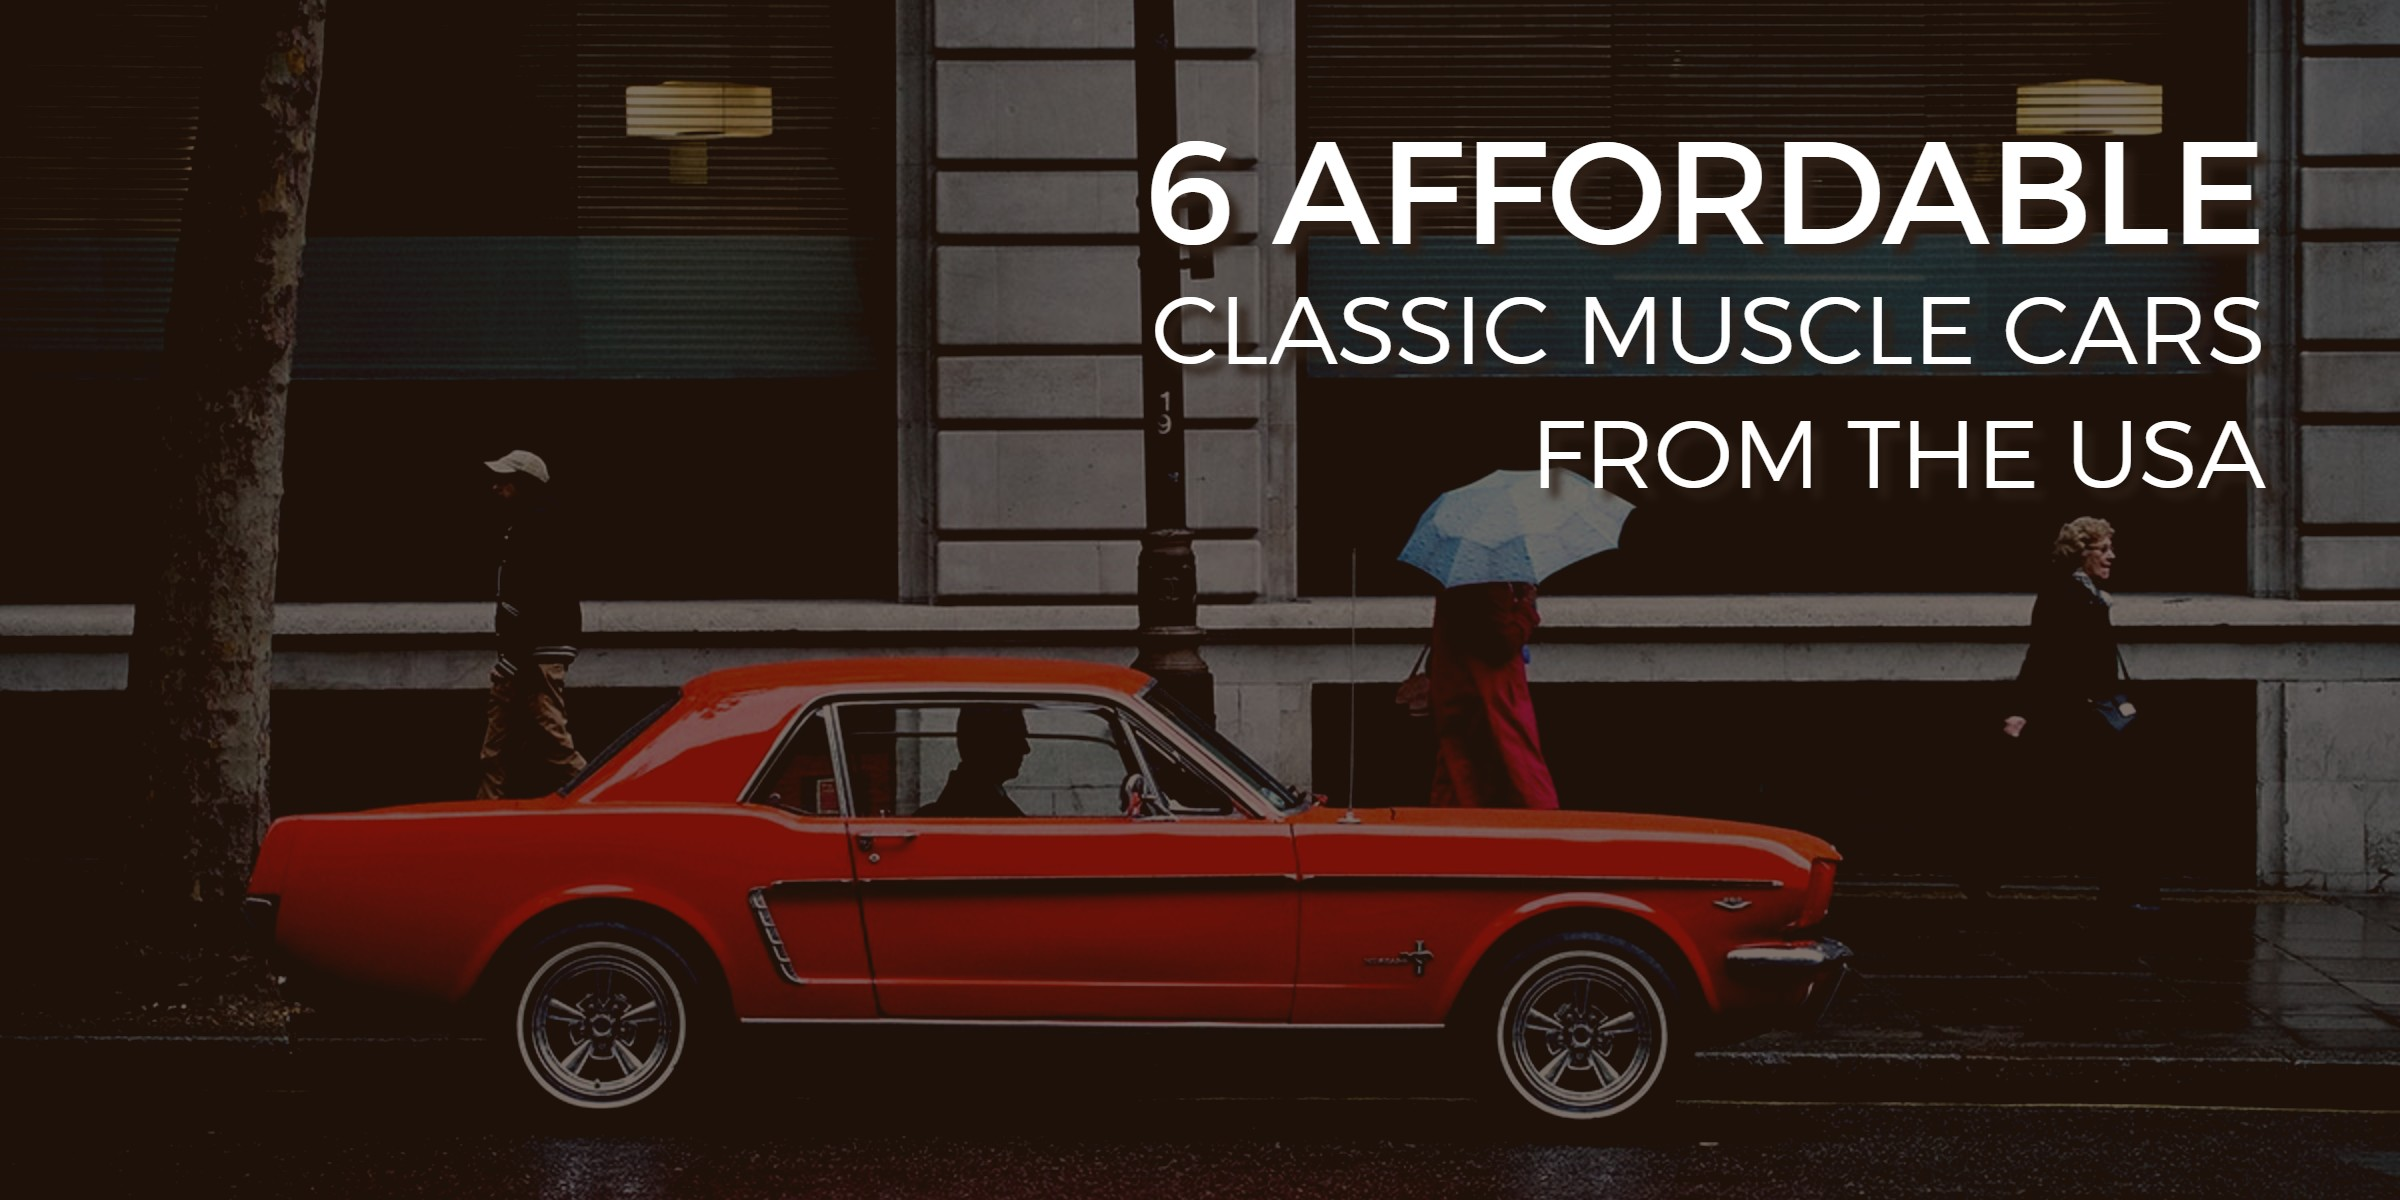 Affordable classic muscle cars from USA.jpg?t=1529418596377